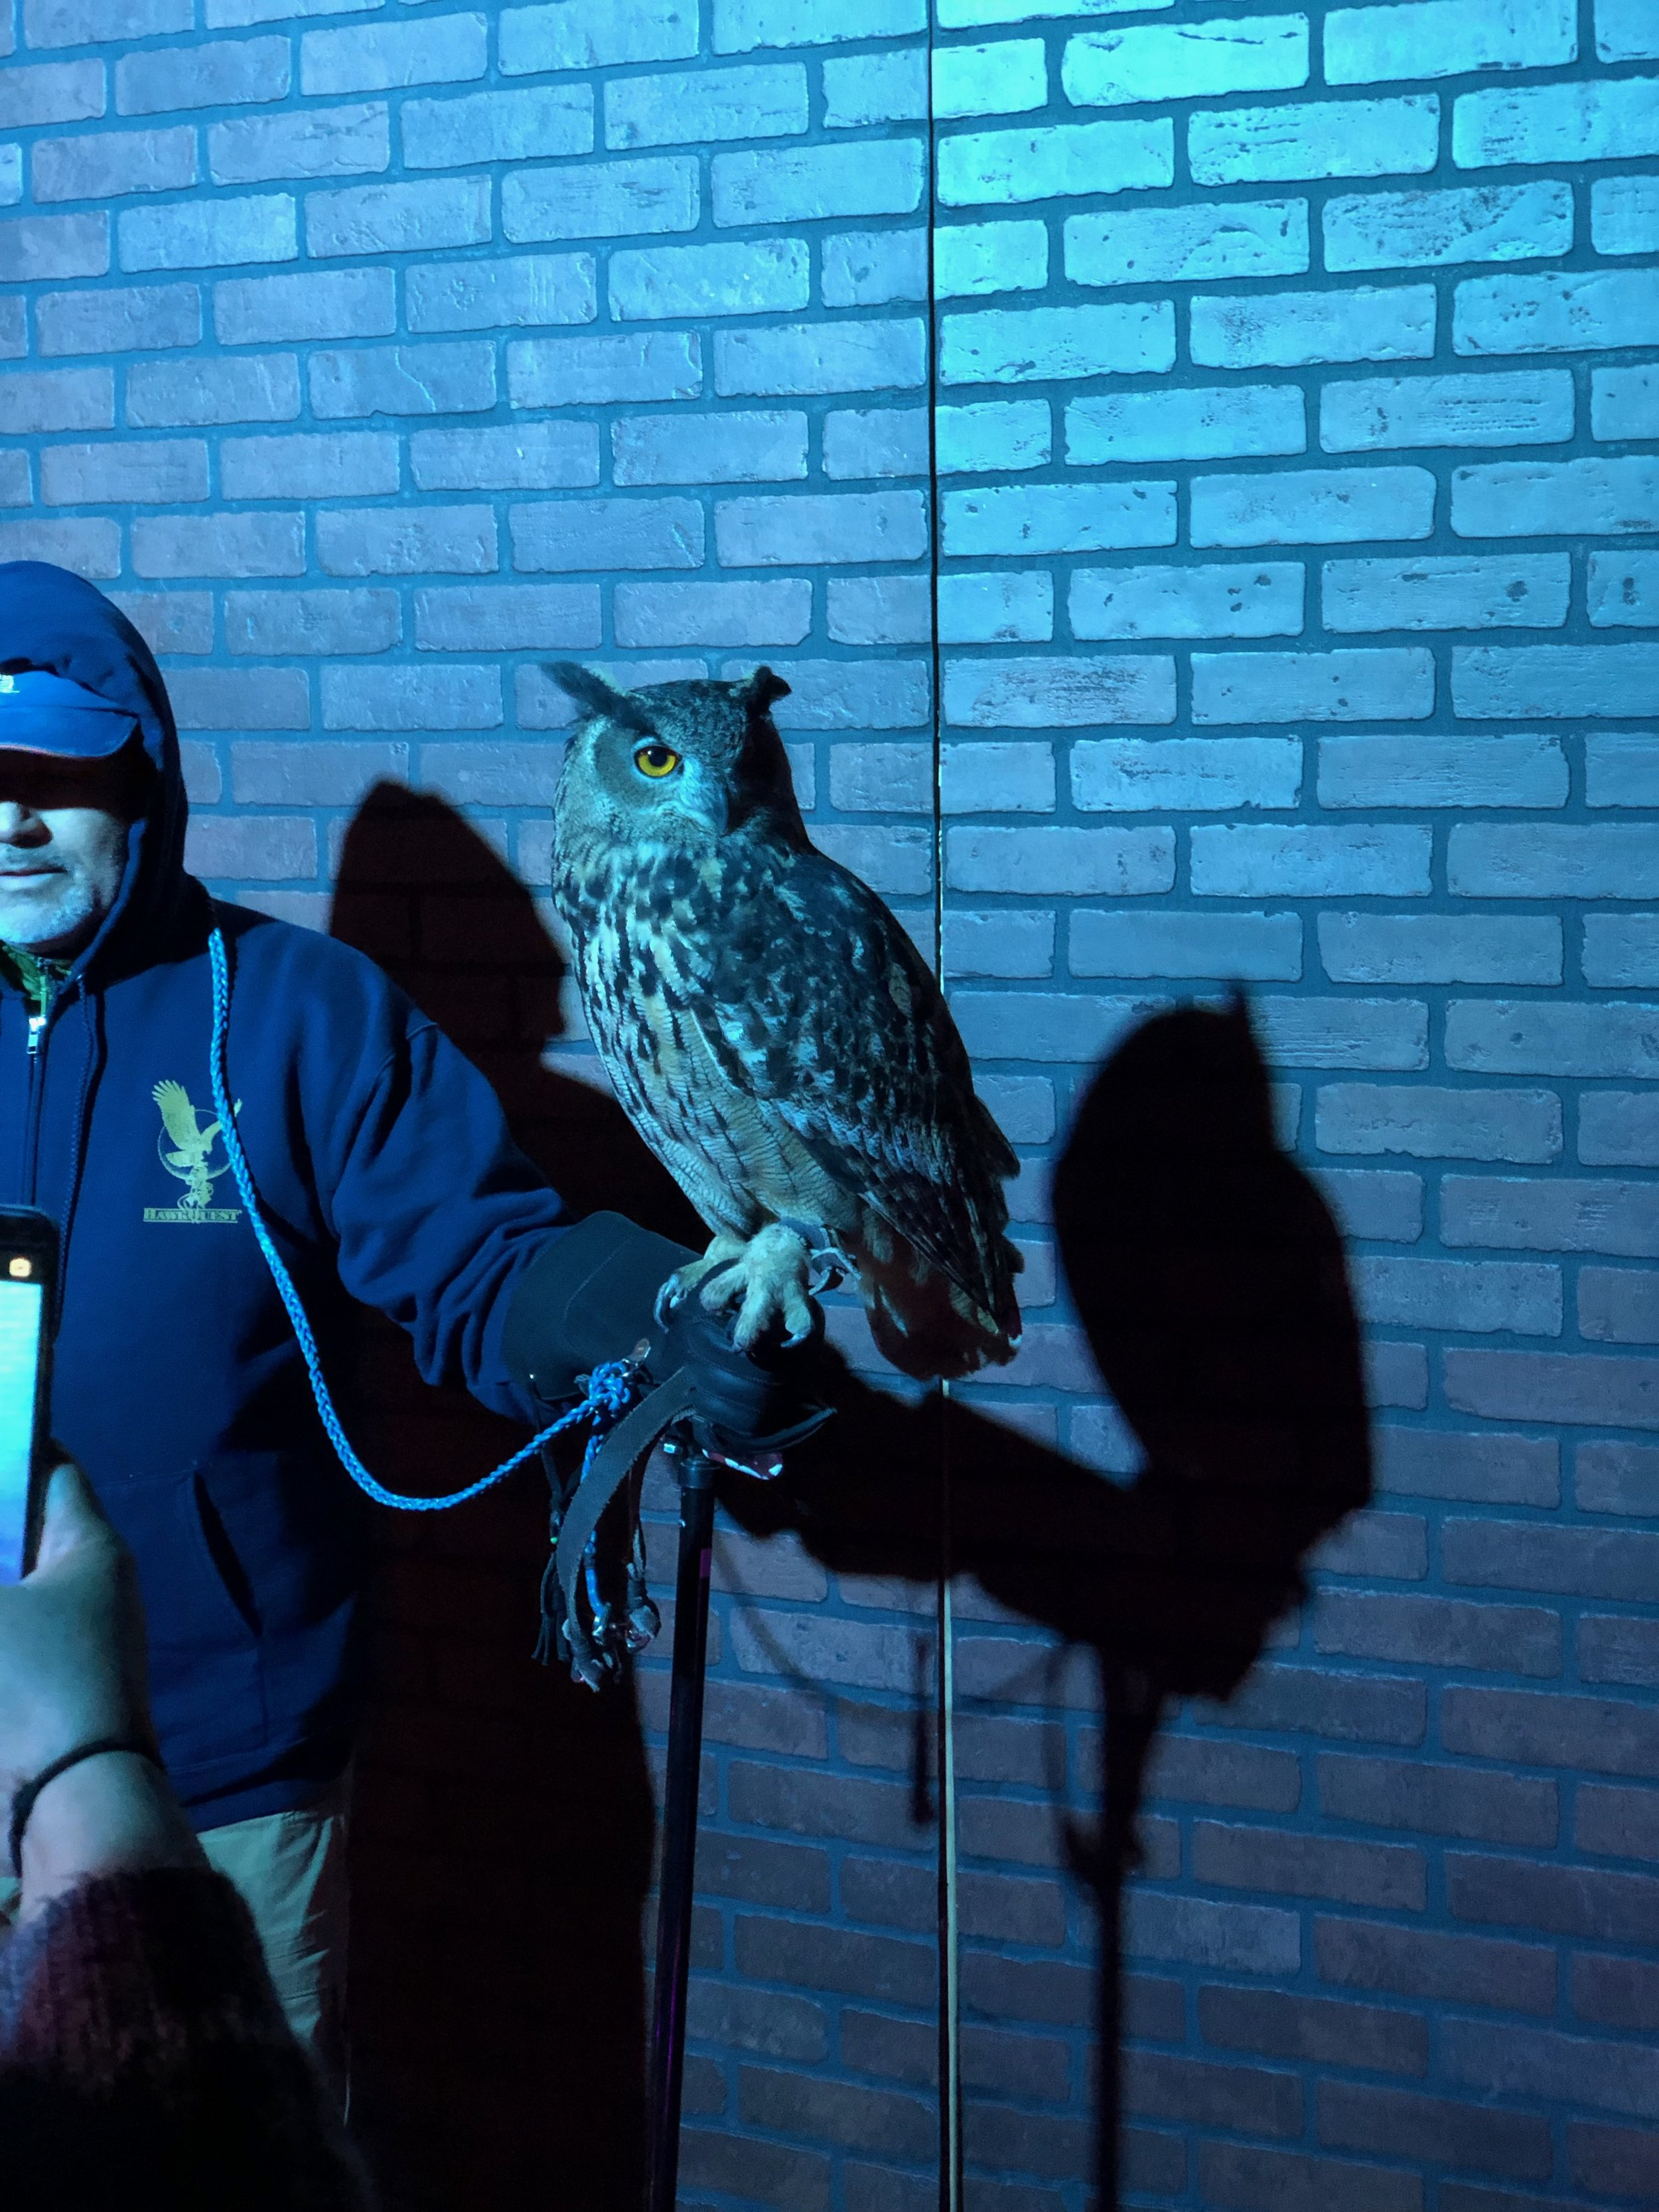 Aarica was there for the owls though, really.